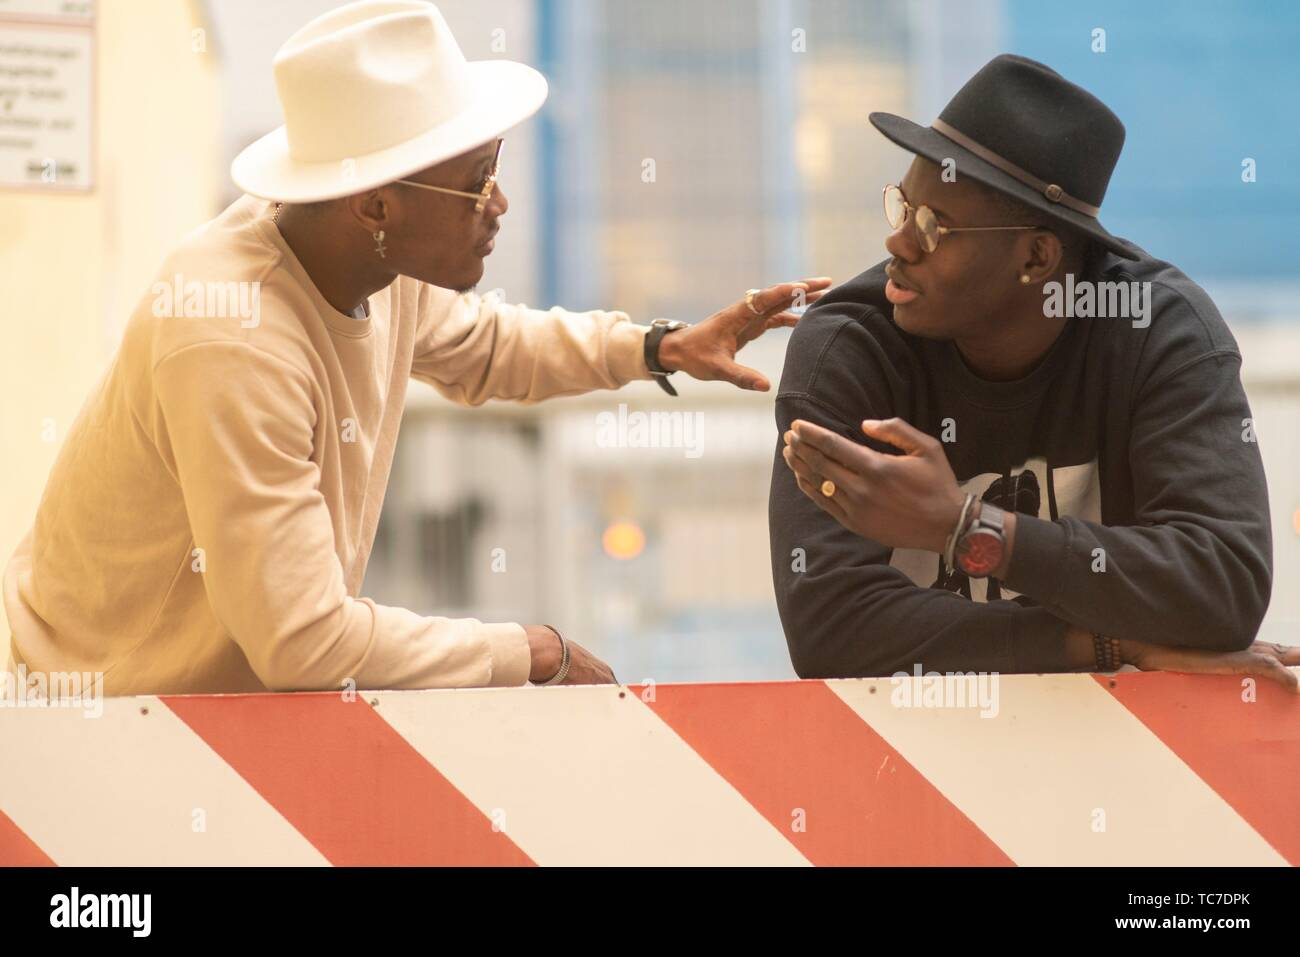 two men leaning on barrier, arguing, talking to each other, dialog, in industrial area in Munich, Germany. - Stock Image